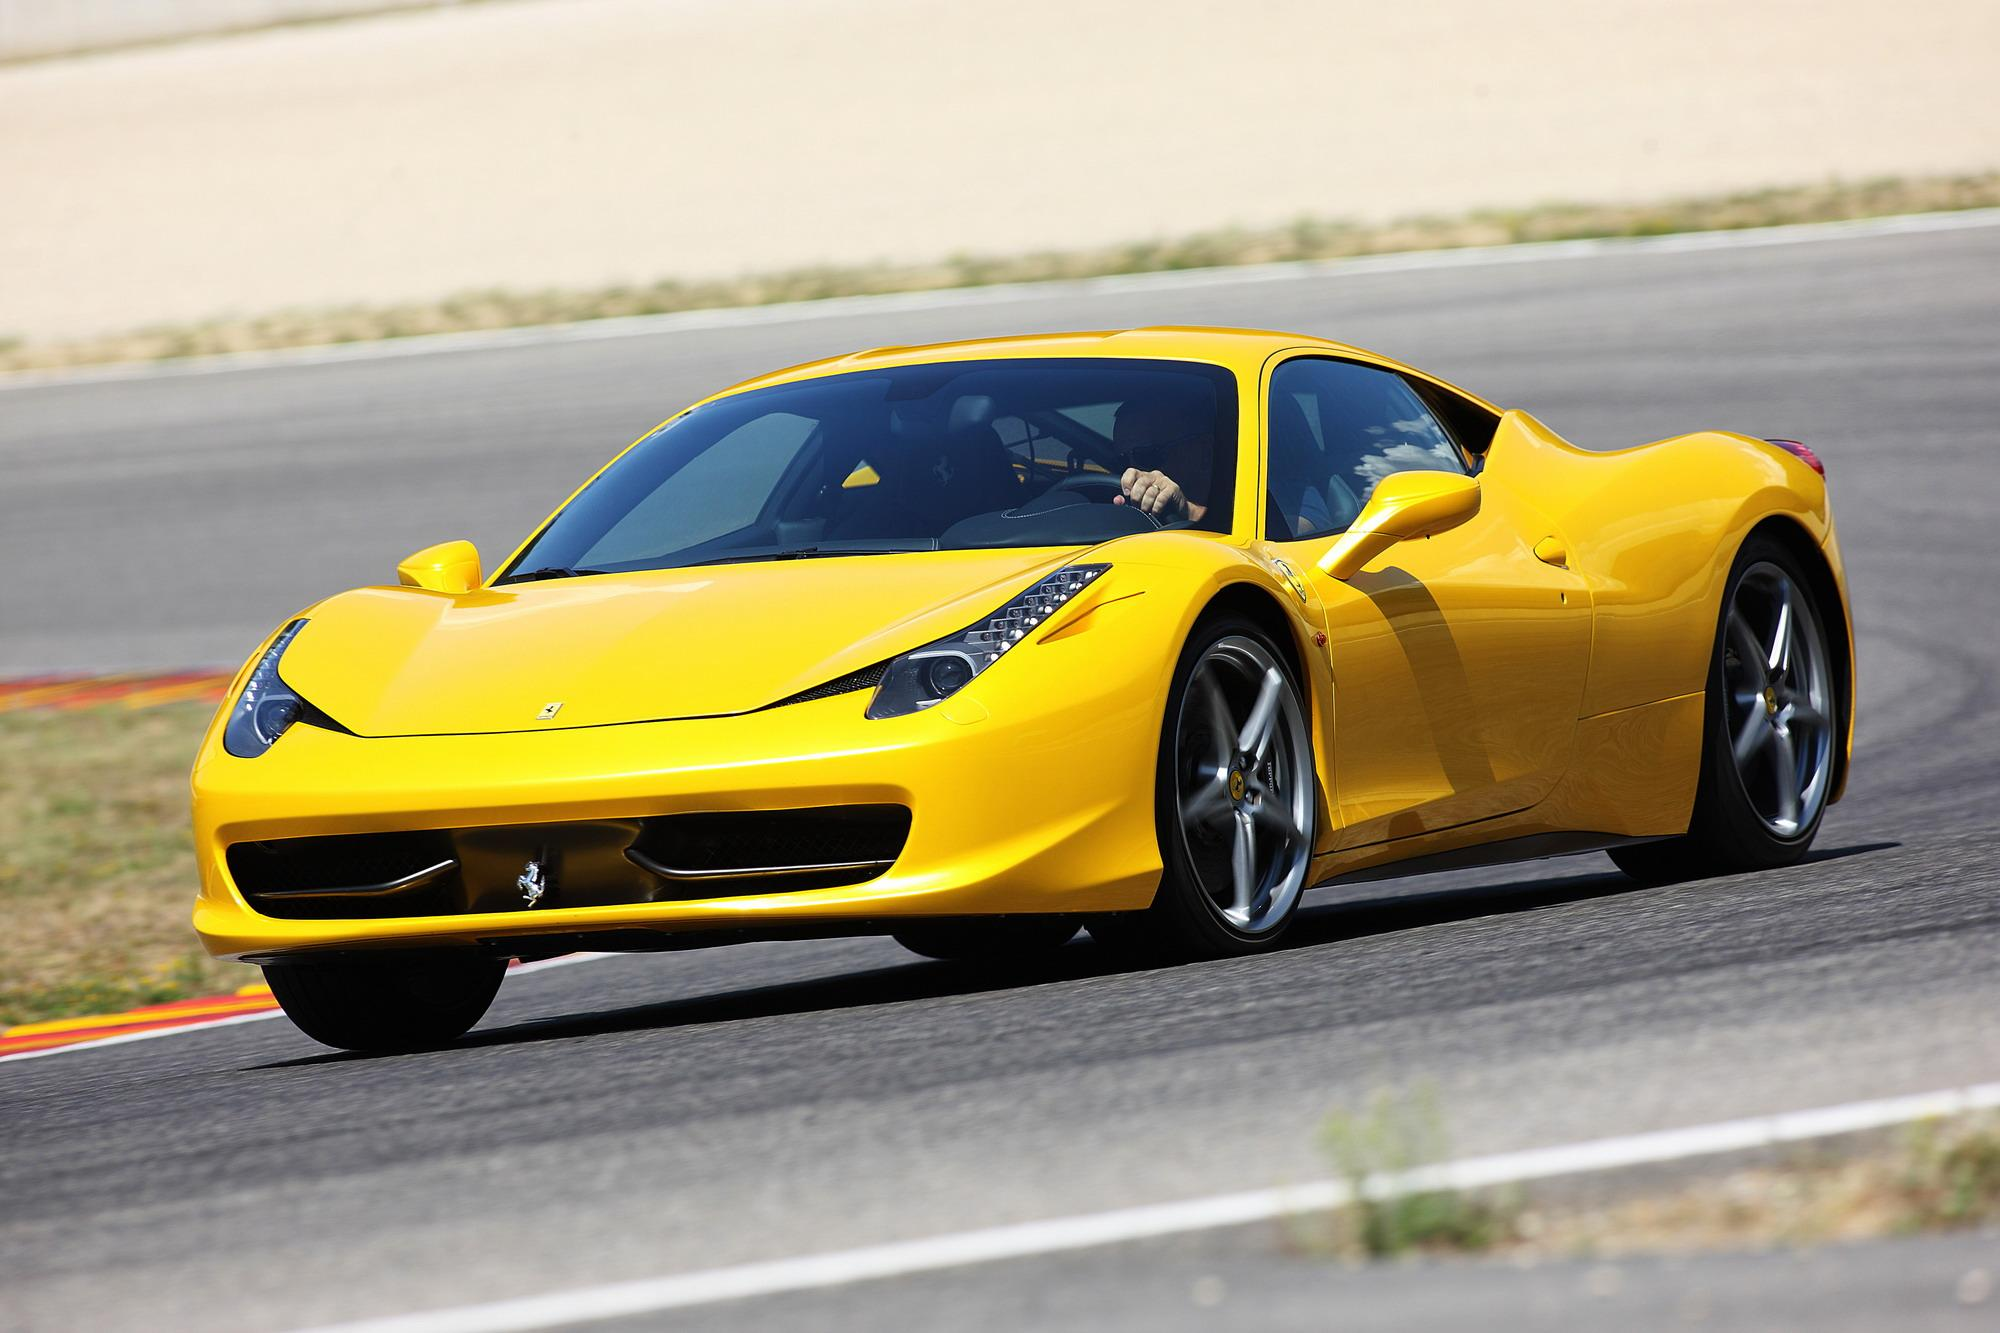 2010 ferrari 458 italia top speed choice image hd cars wallpaper 2010 ferrari 458 italia top speed image collections hd cars 2010 ferrari 458 italia review top vanachro Images